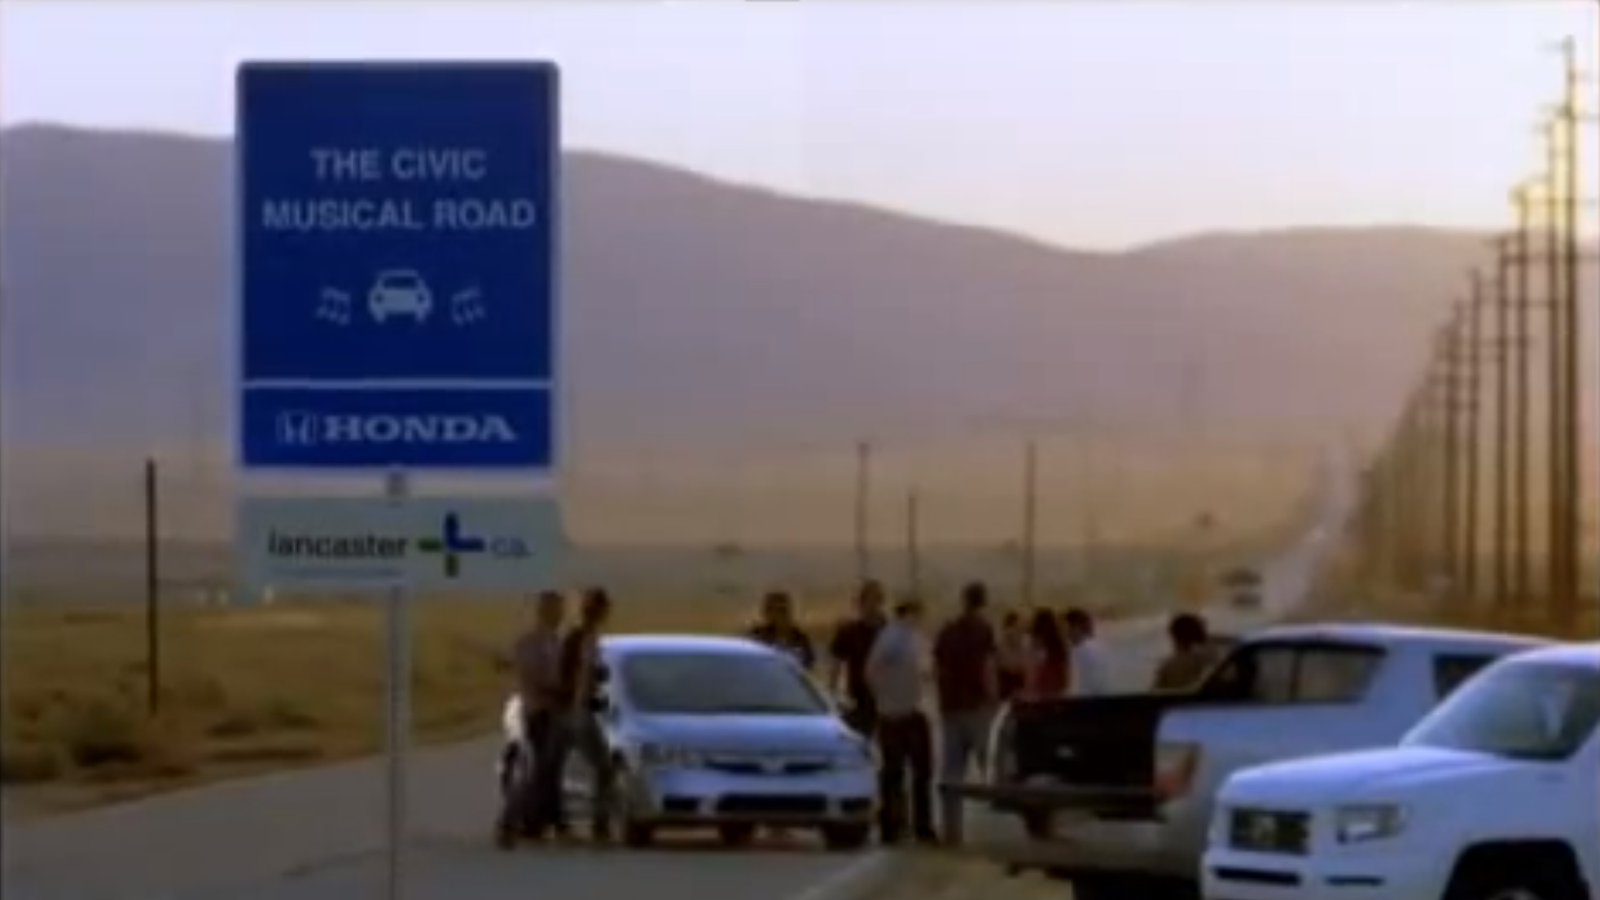 Here's How Honda's 'Musical Road' In California Was Done Wrong Not Just Once, But Twice